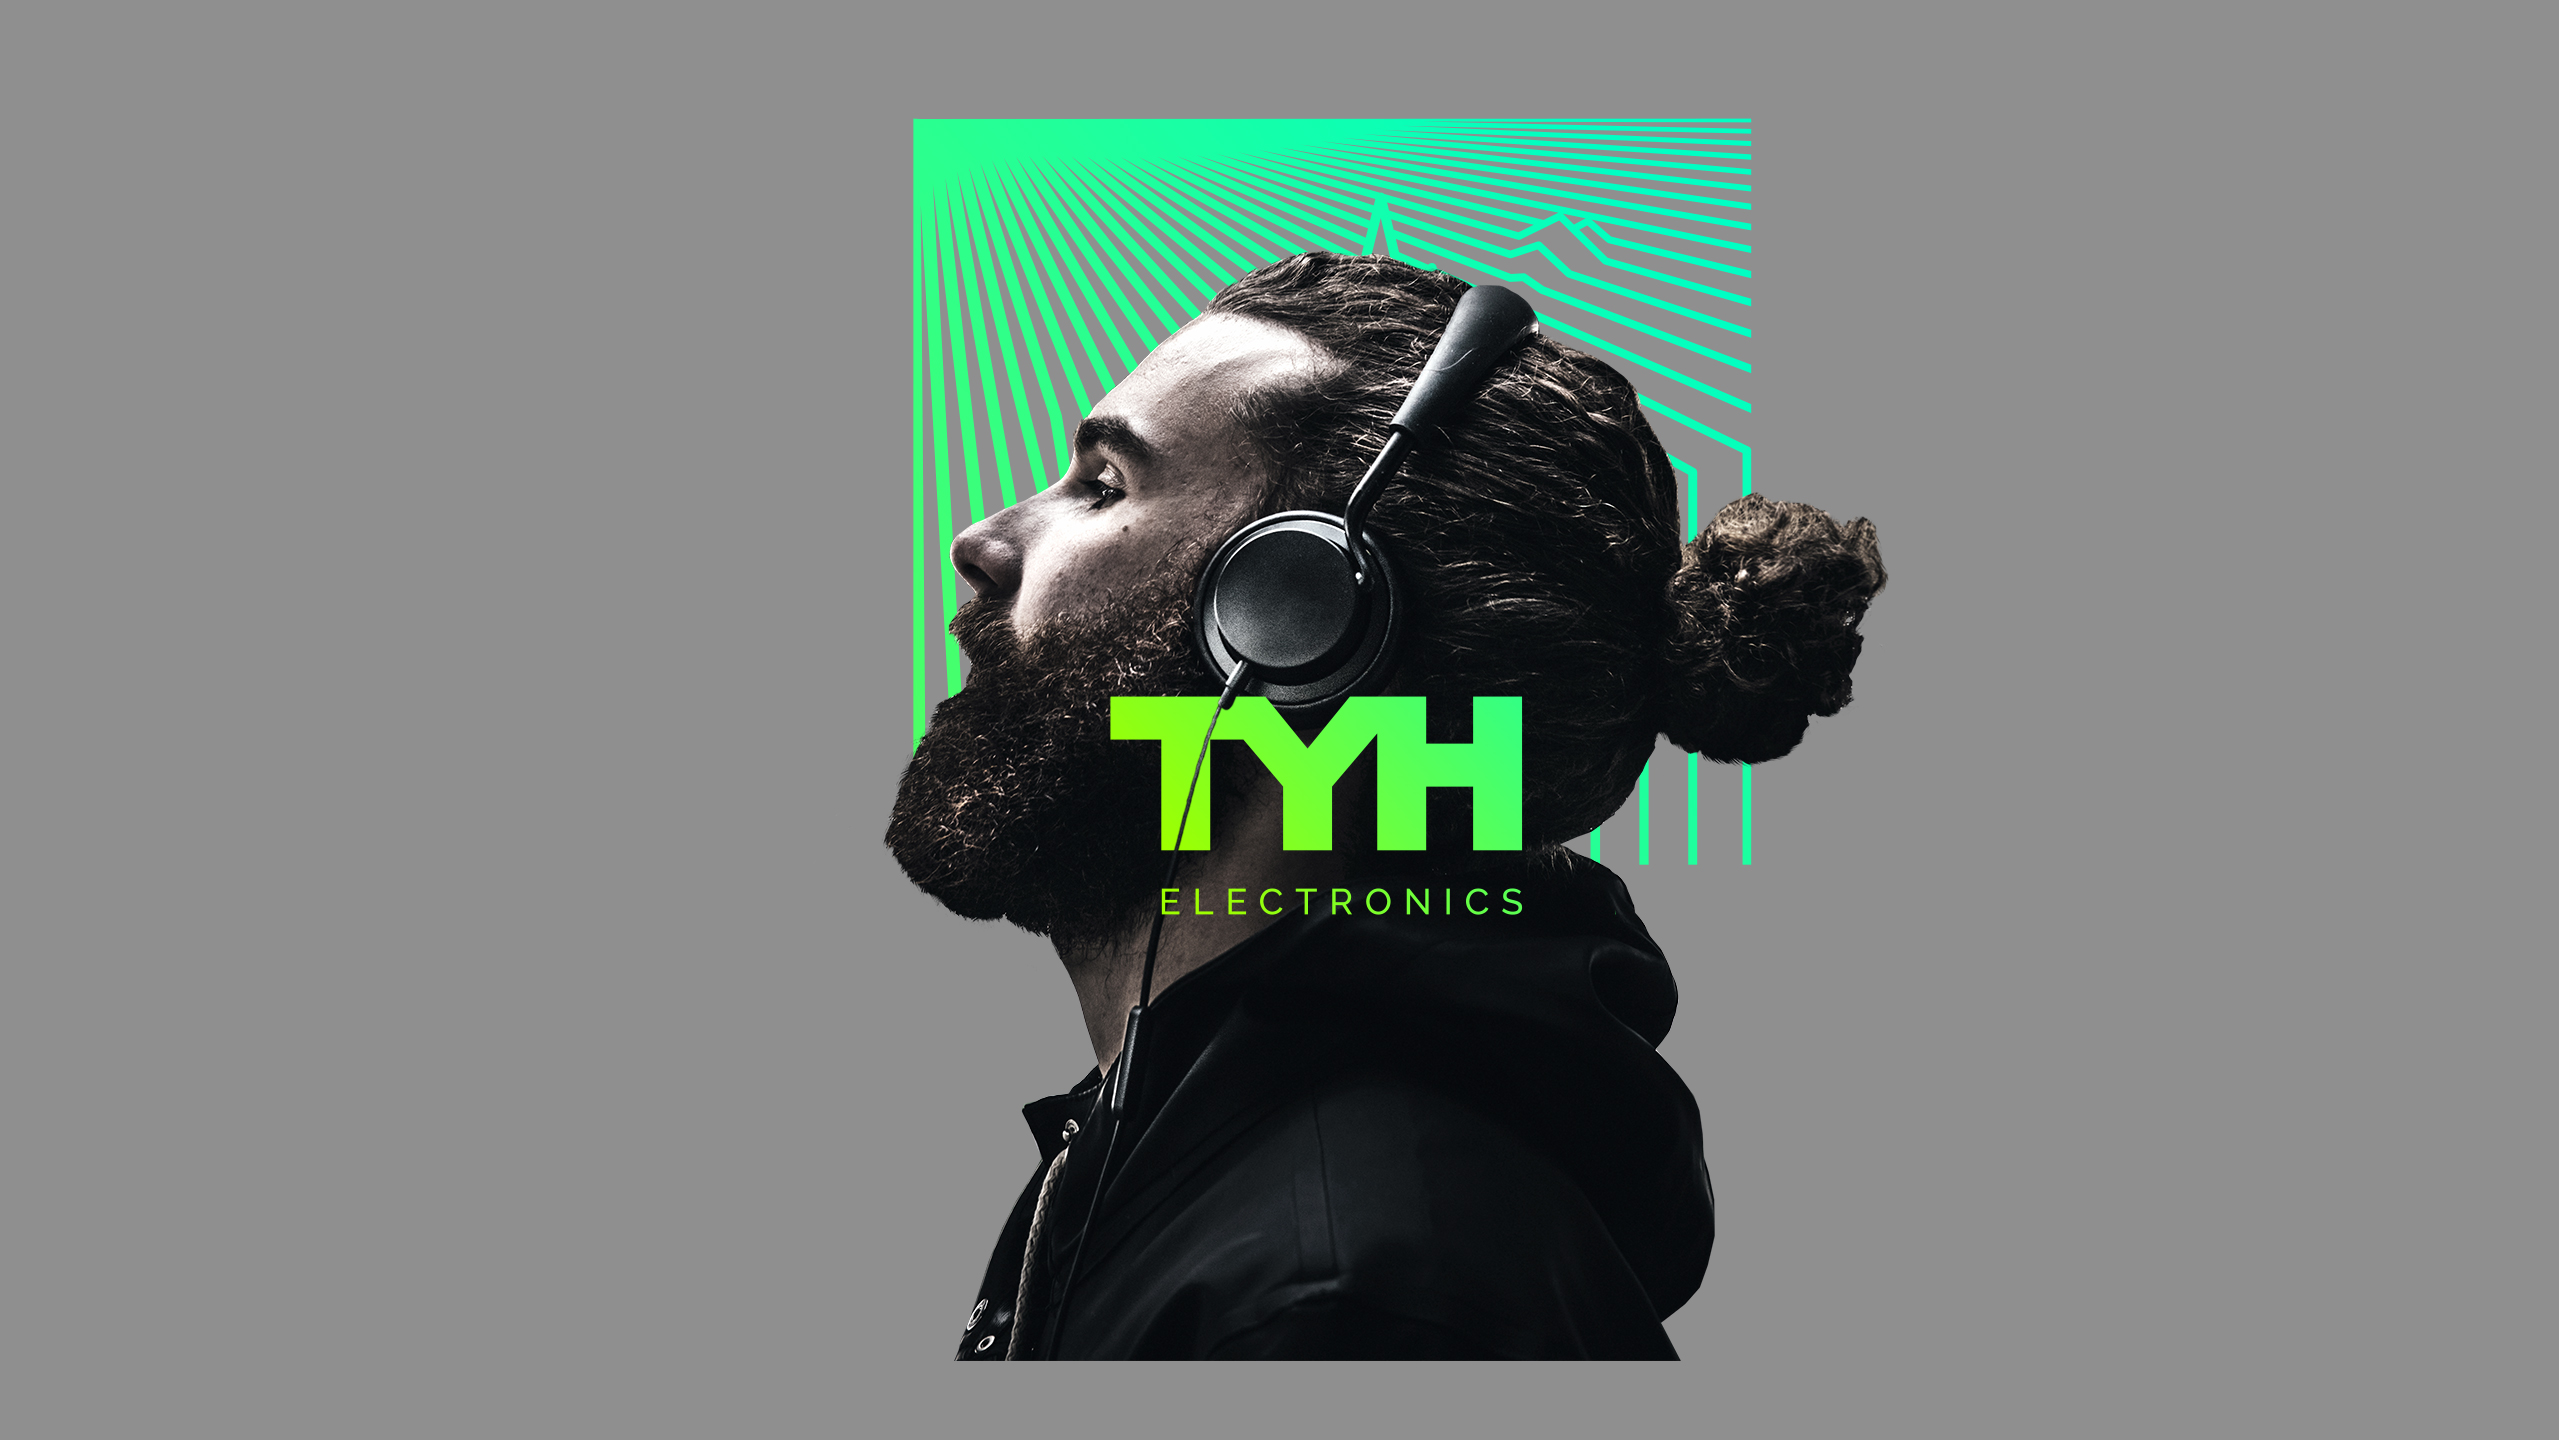 Header para TYH Electronics